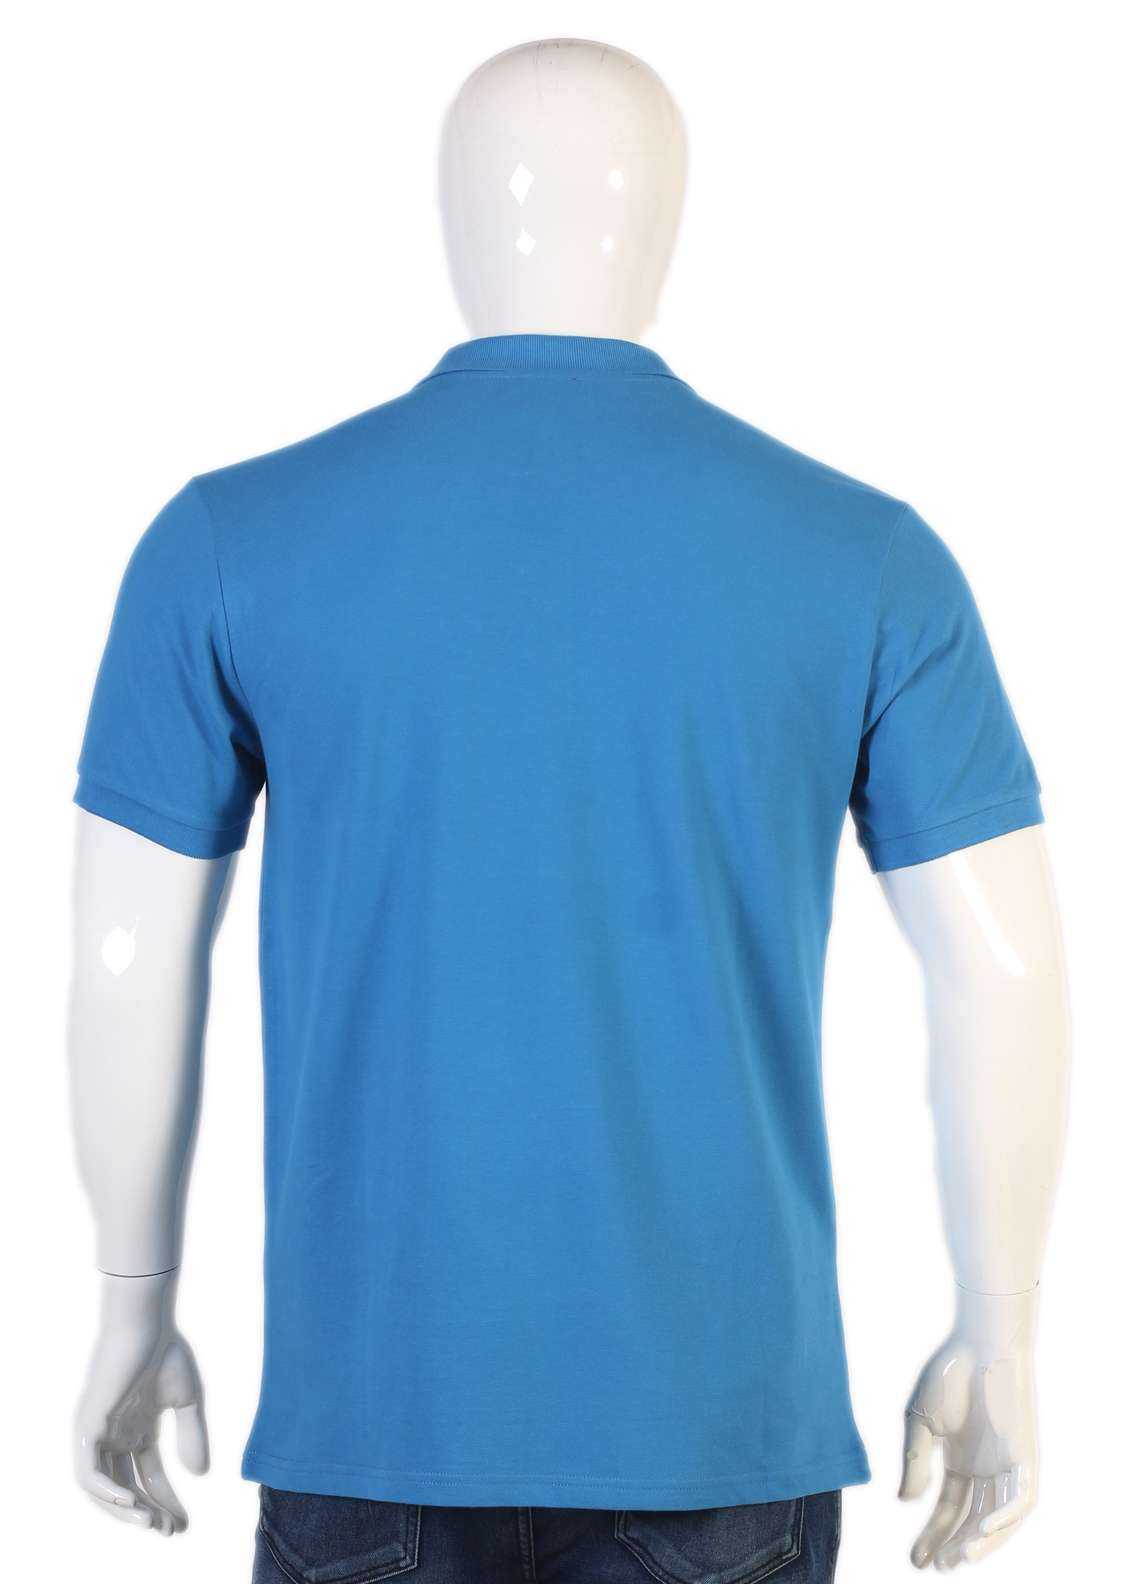 Sanaulla Exclusive Range Jersey Polo T-Shirts for Men - Blue TKM18S V-20